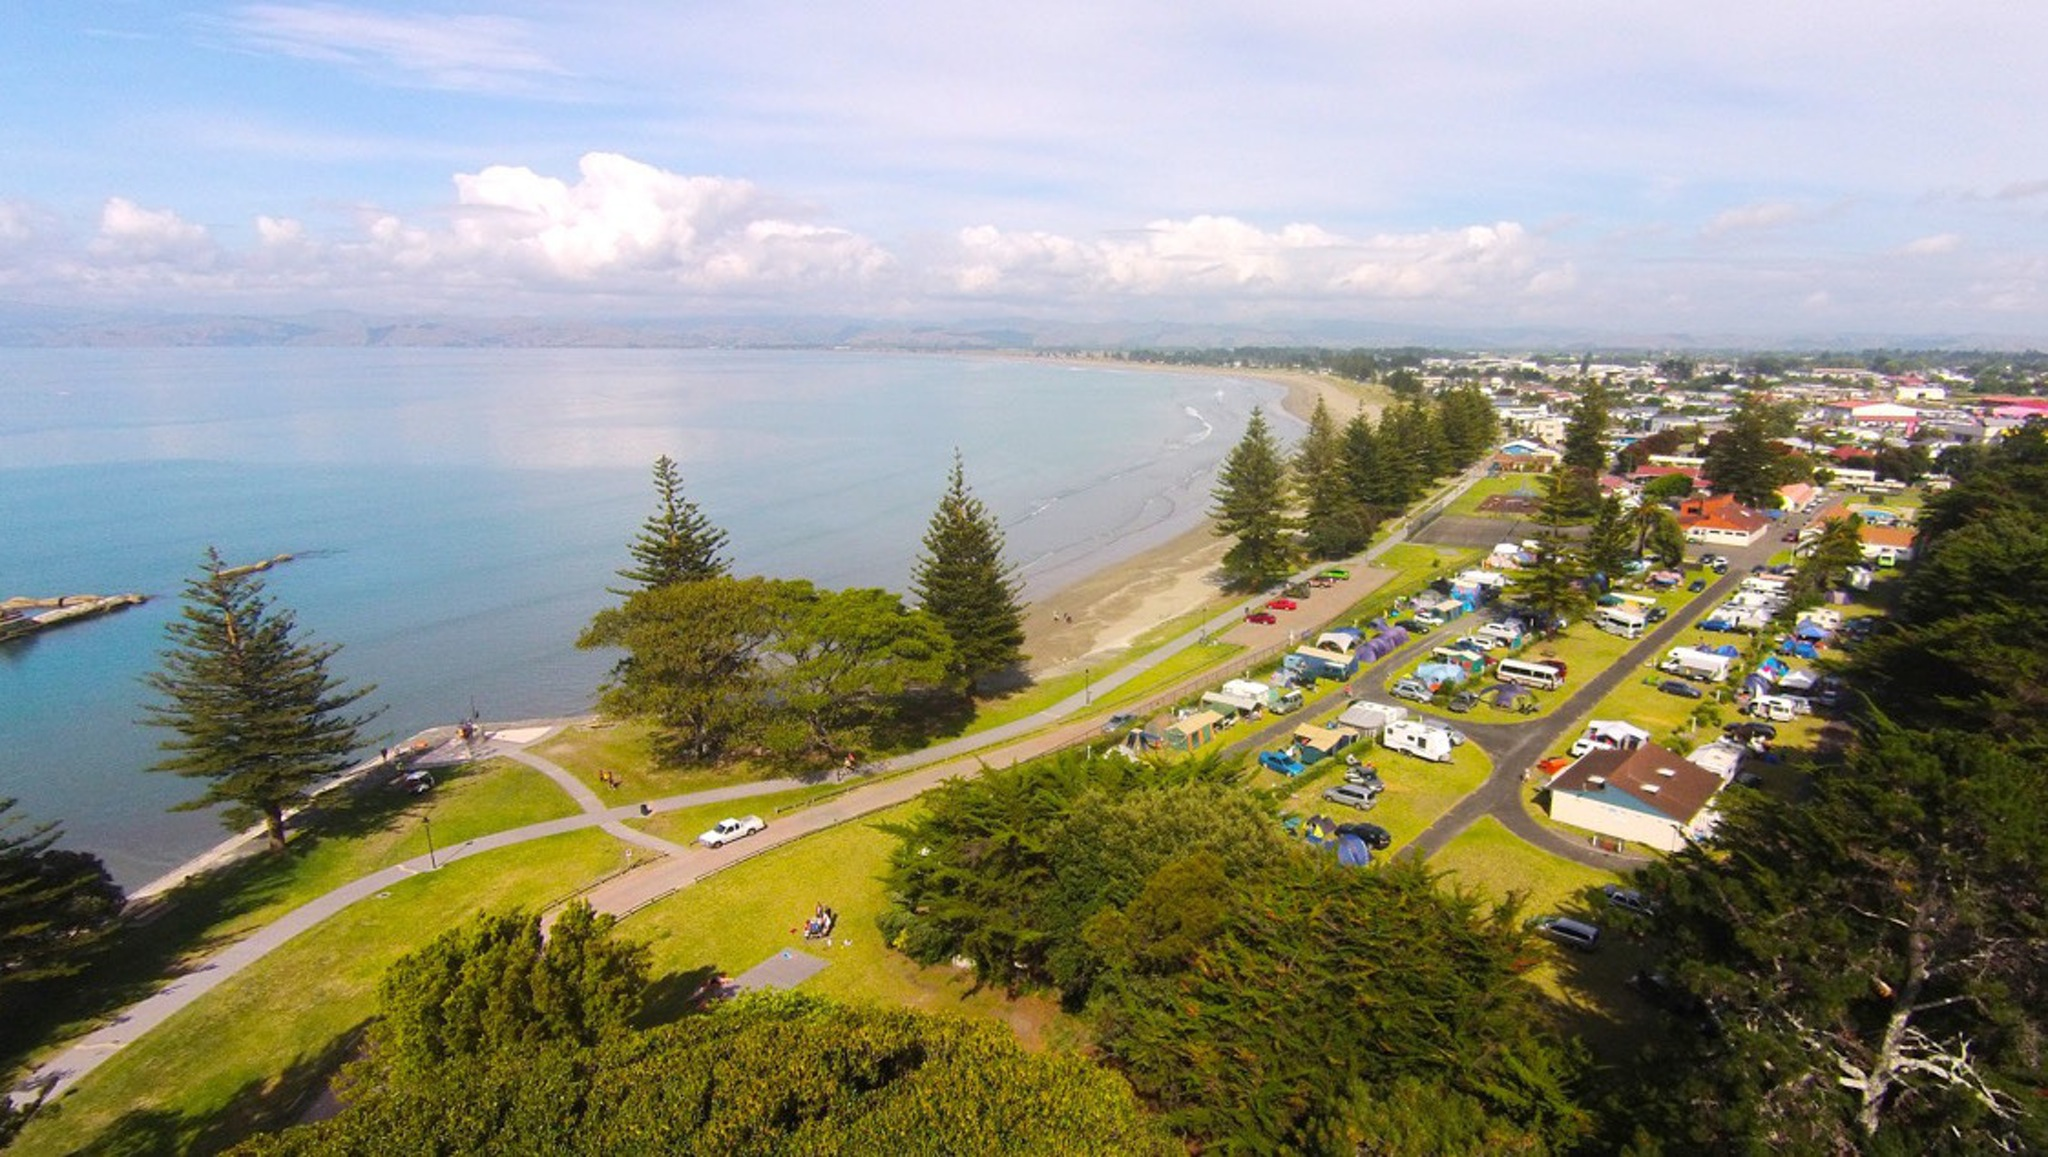 RentACampervan - Waikanae Beach TOP 10 Holiday Park